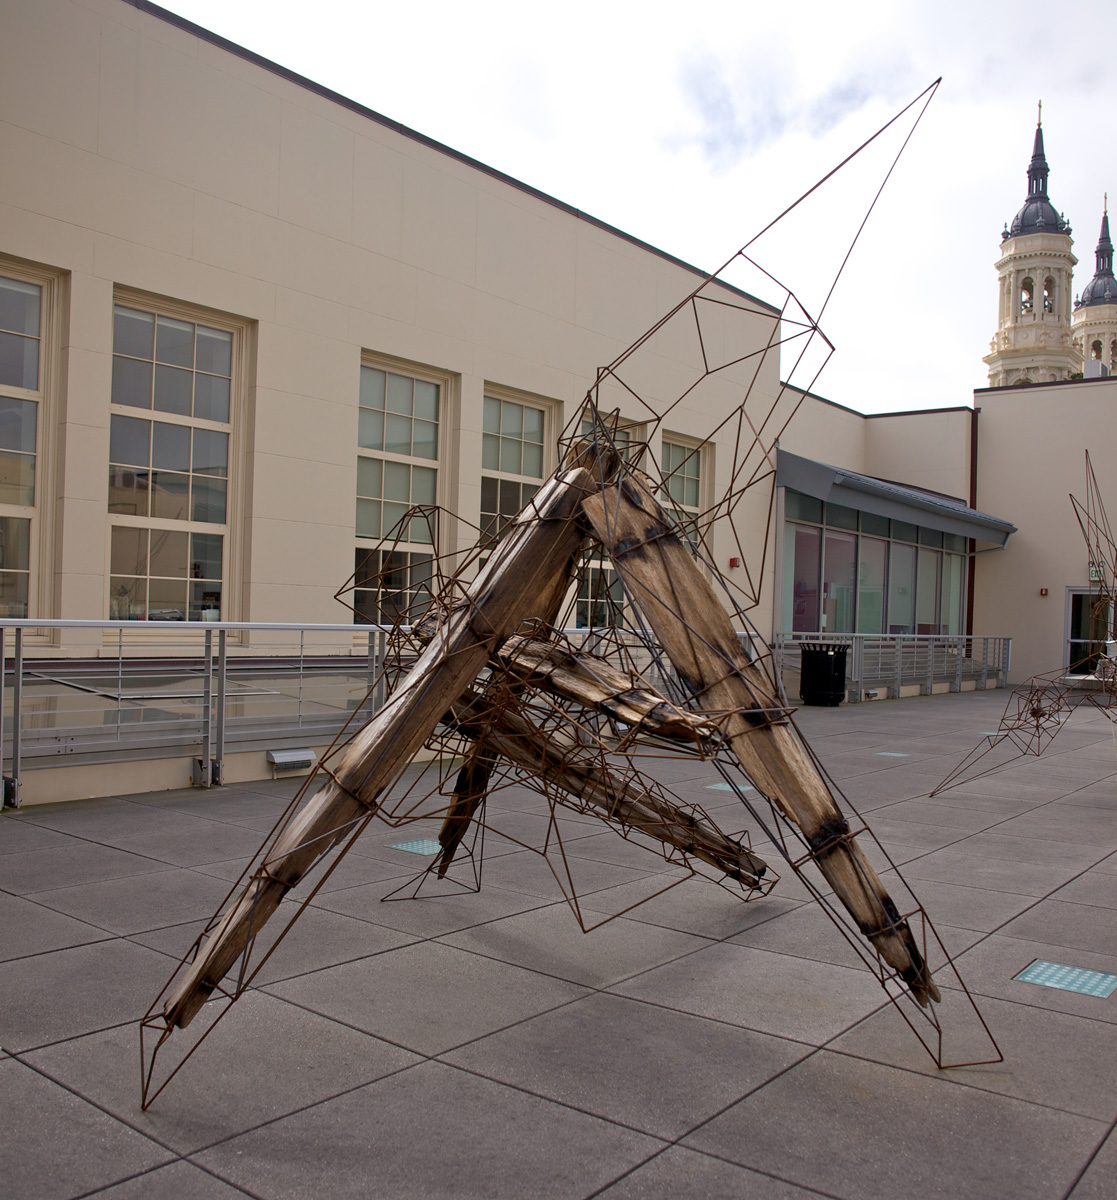 12' x 8' x 7', 2013 (Installation view at the University of San Francisco Sculpture Terrace.)